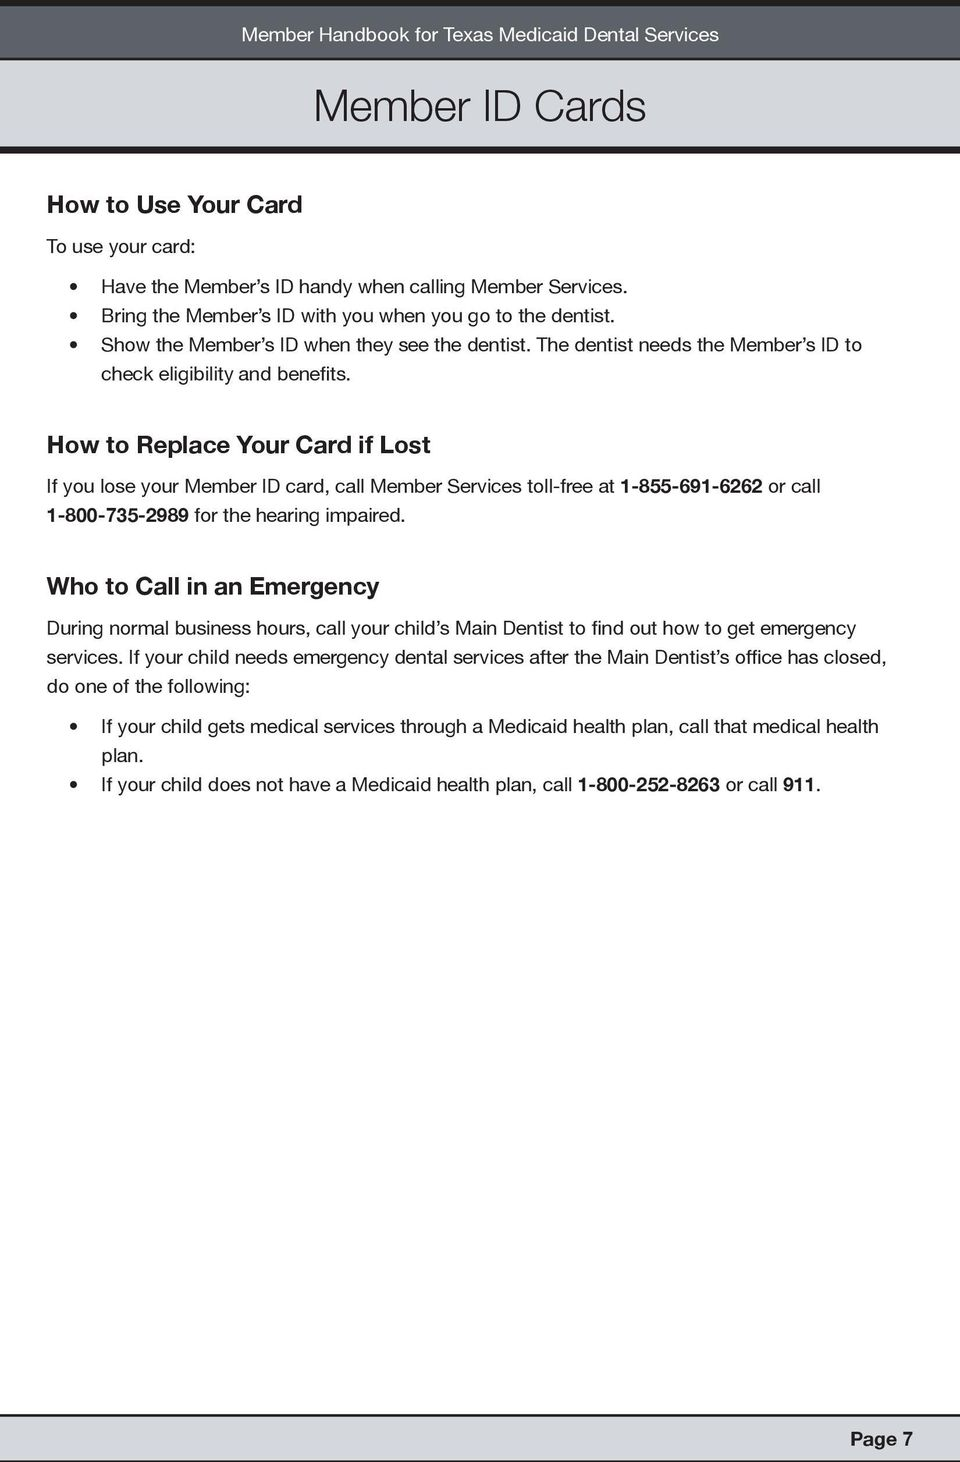 How to Replace Your Card if Lost If you lose your Member ID card, call Member Services toll-free at 1-855-691-6262 or call 1-800-735-2989 for the hearing impaired.